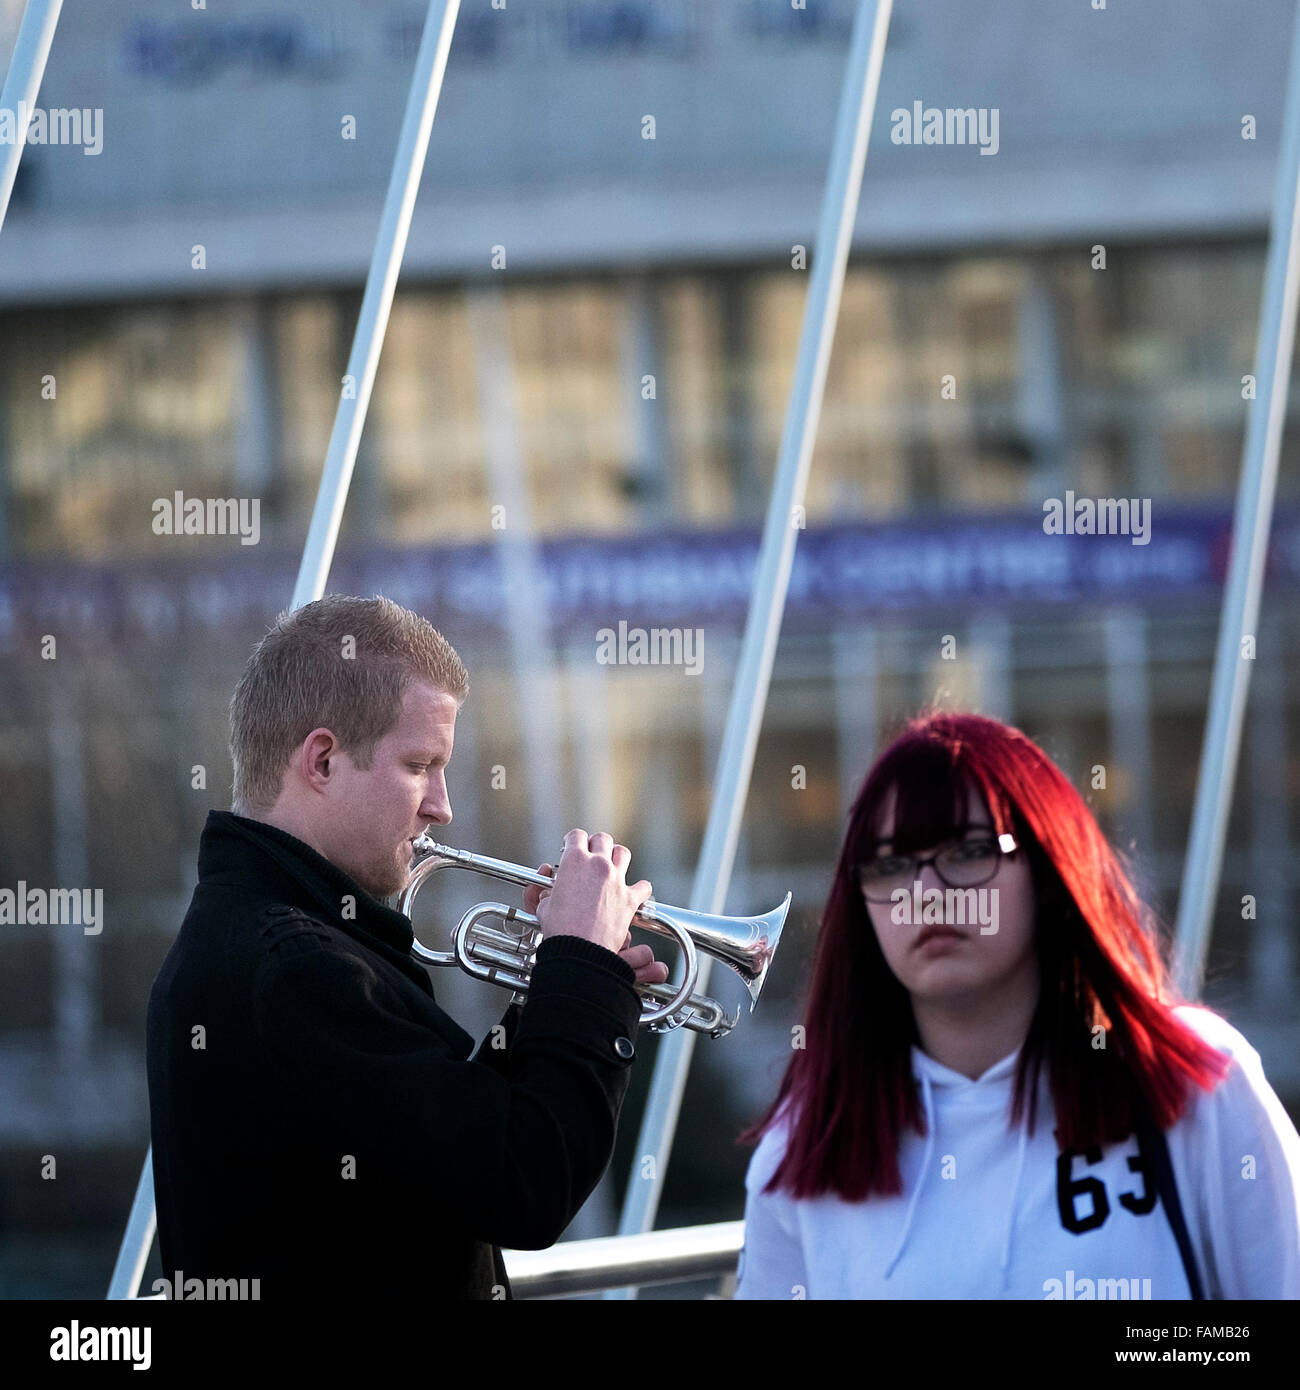 A busker plays the cornet in London. - Stock Image